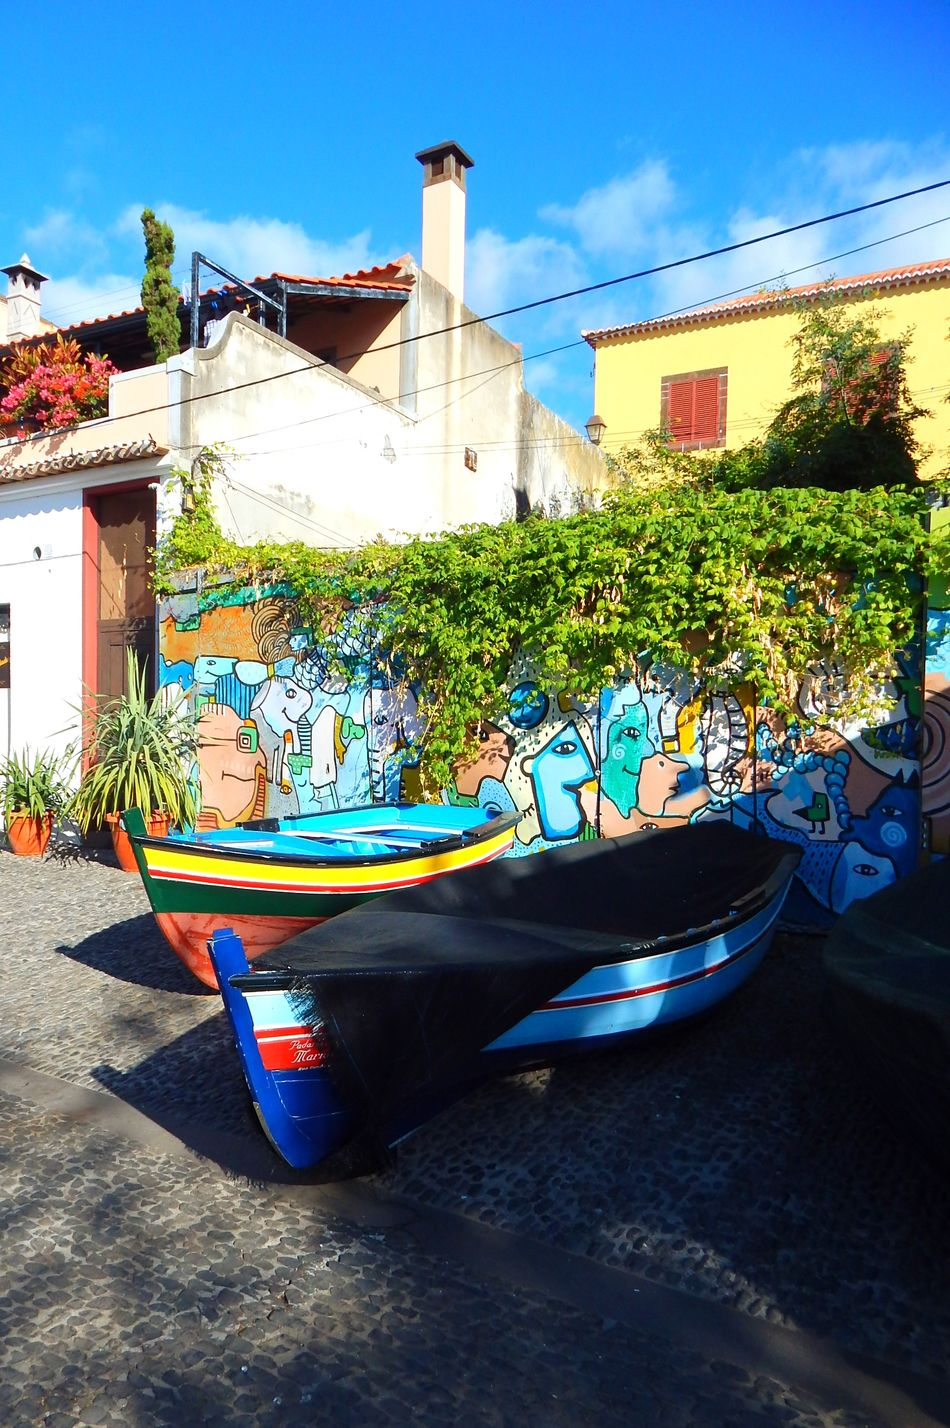 Souvenir Madeira !! Taking Photos Enjoying Life Beautiful City Walk Colors Colorful Portugal Traveling Boat Painting Sky Blue